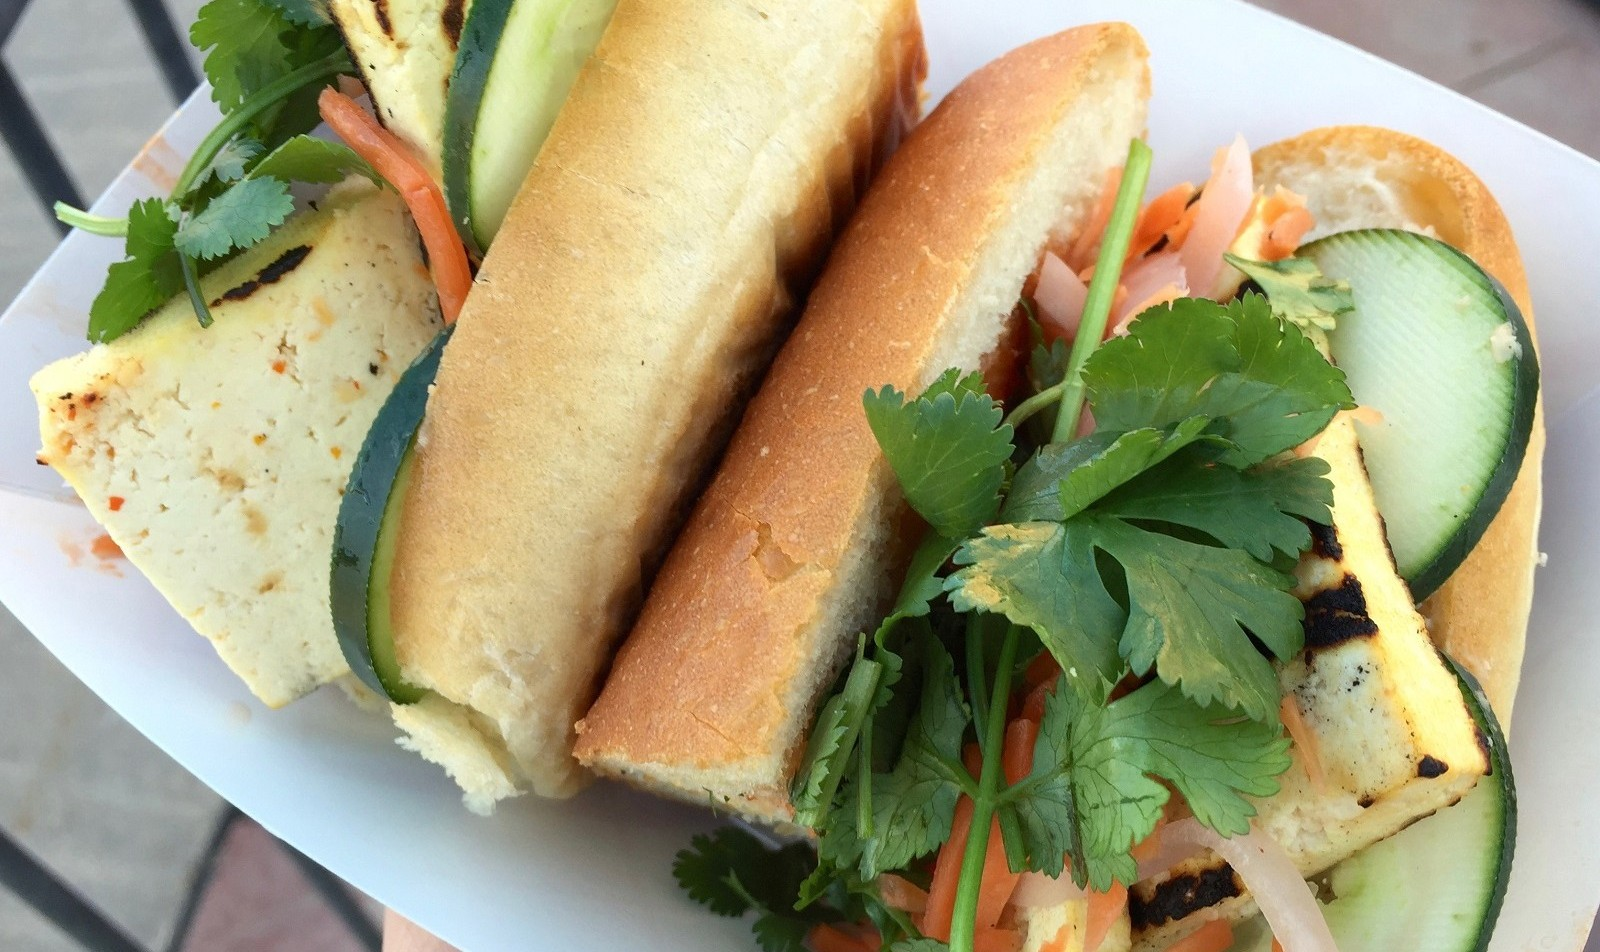 The Vietnamese banh mi from The Black Market Food Truck. (Alex Mikol/Special to The News)